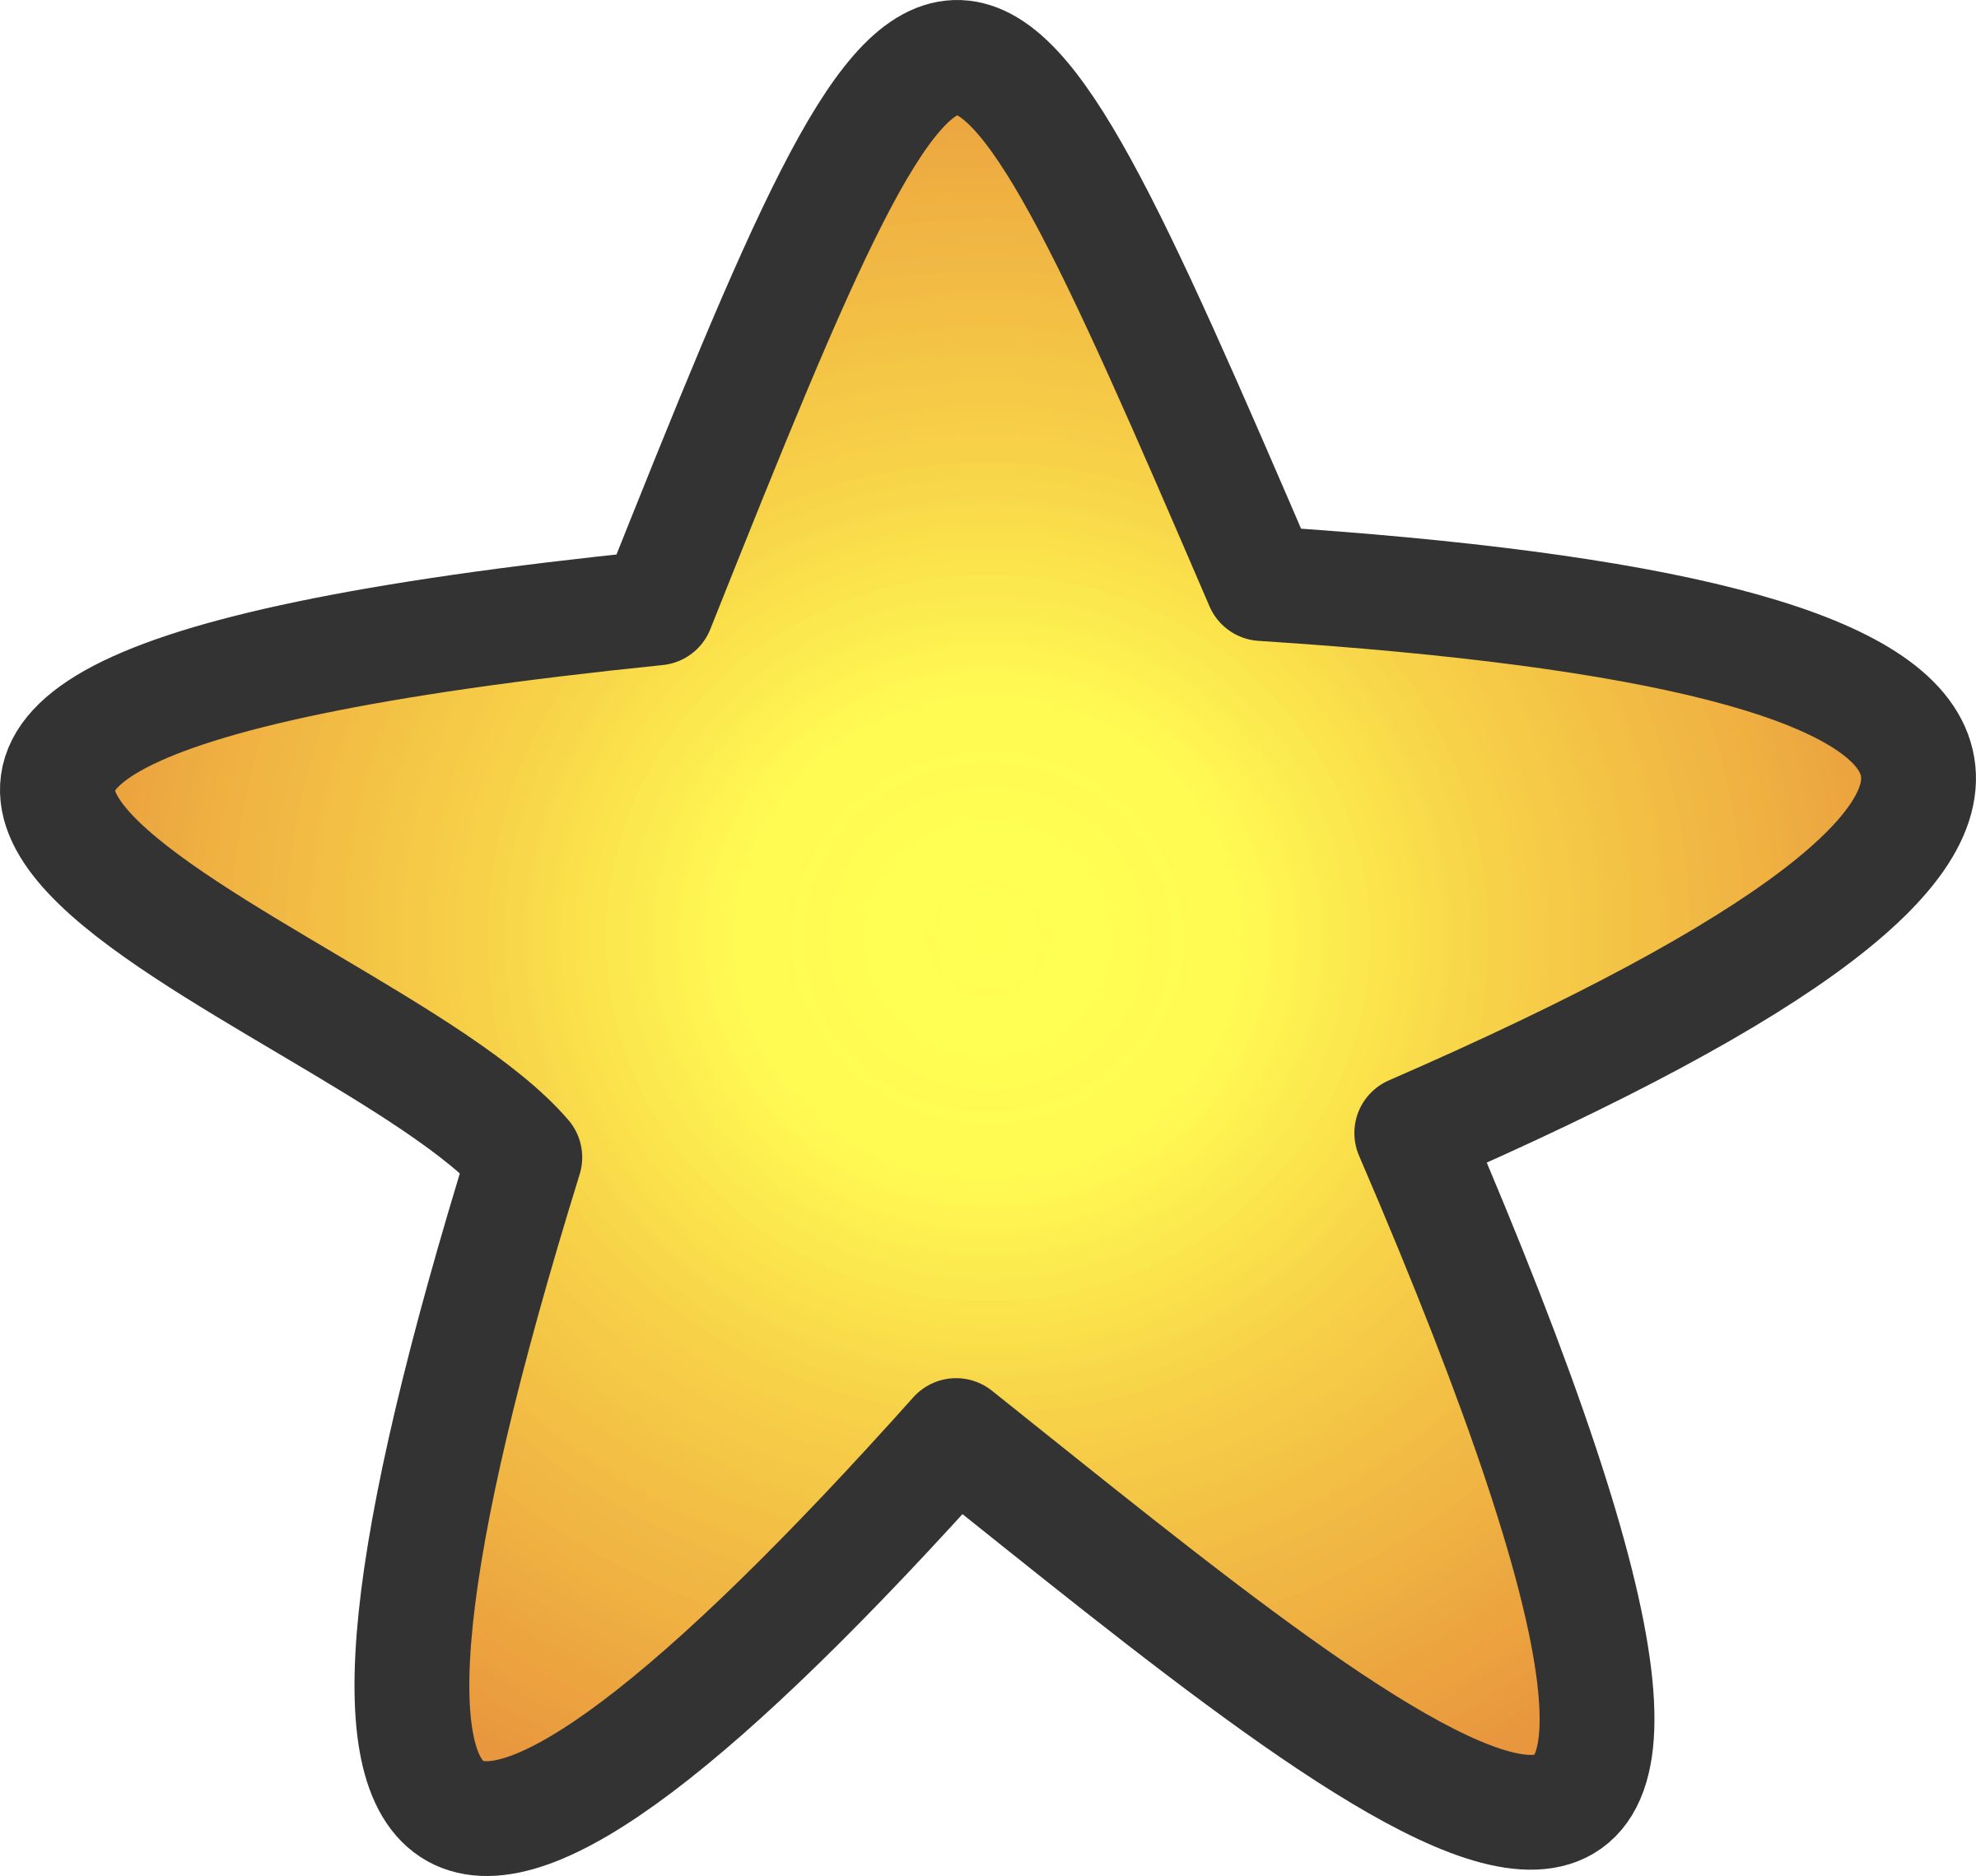 Gold star by klainen